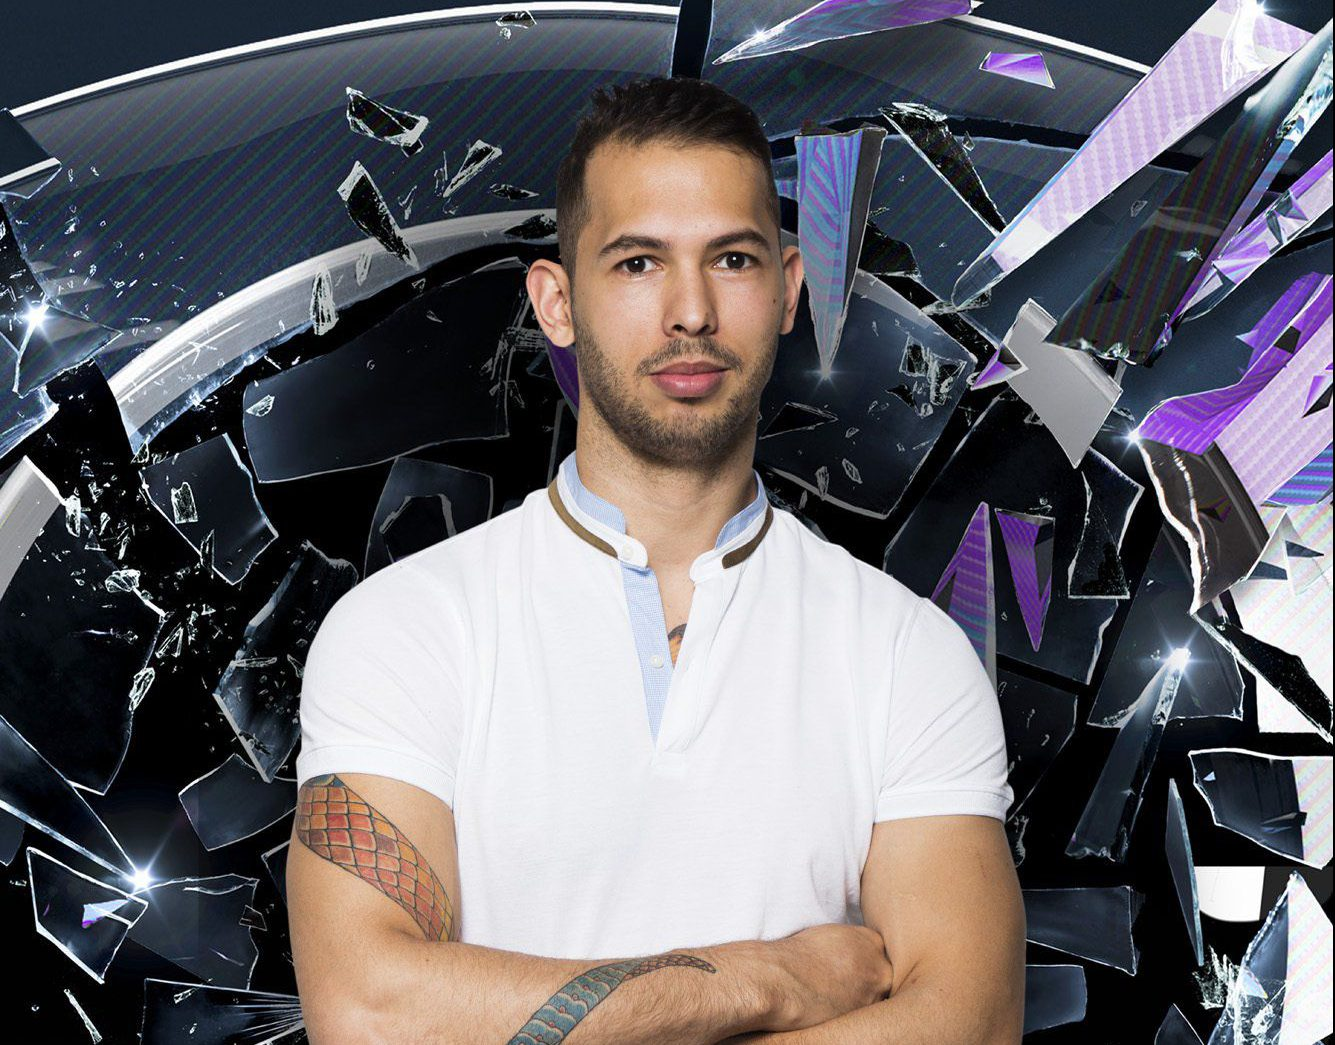 Channel 5 undated handout photo of Andrew Tate, one of the housemates in this year's Summer Big Brother 2016. PRESS ASSOCIATION Photo. Issue date: Tuesday June 7, 2016. Photo credit should read: Channel 5/PA Wire NOTE TO EDITORS: This handout photo may only be used in for editorial reporting purposes for the contemporaneous illustration of events, things or the people in the image or facts mentioned in the caption. Reuse of the picture may require further permission from the copyright holder.